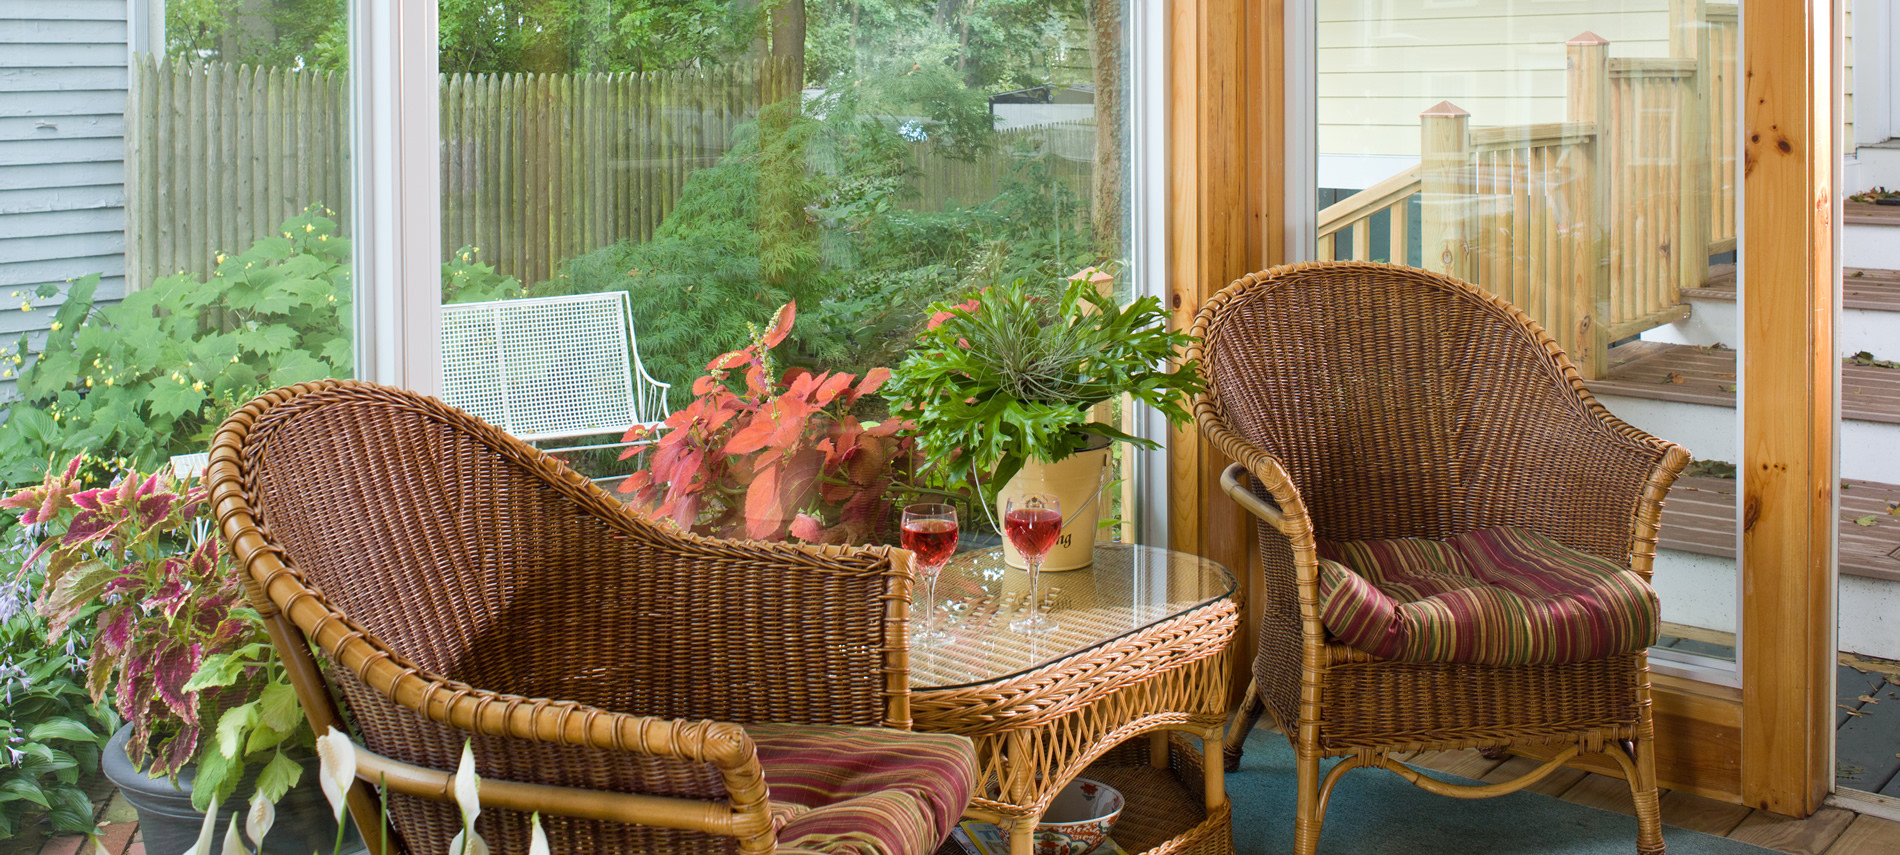 Two Wicker Chairs with table in the center with two wine glasses with Red Wine